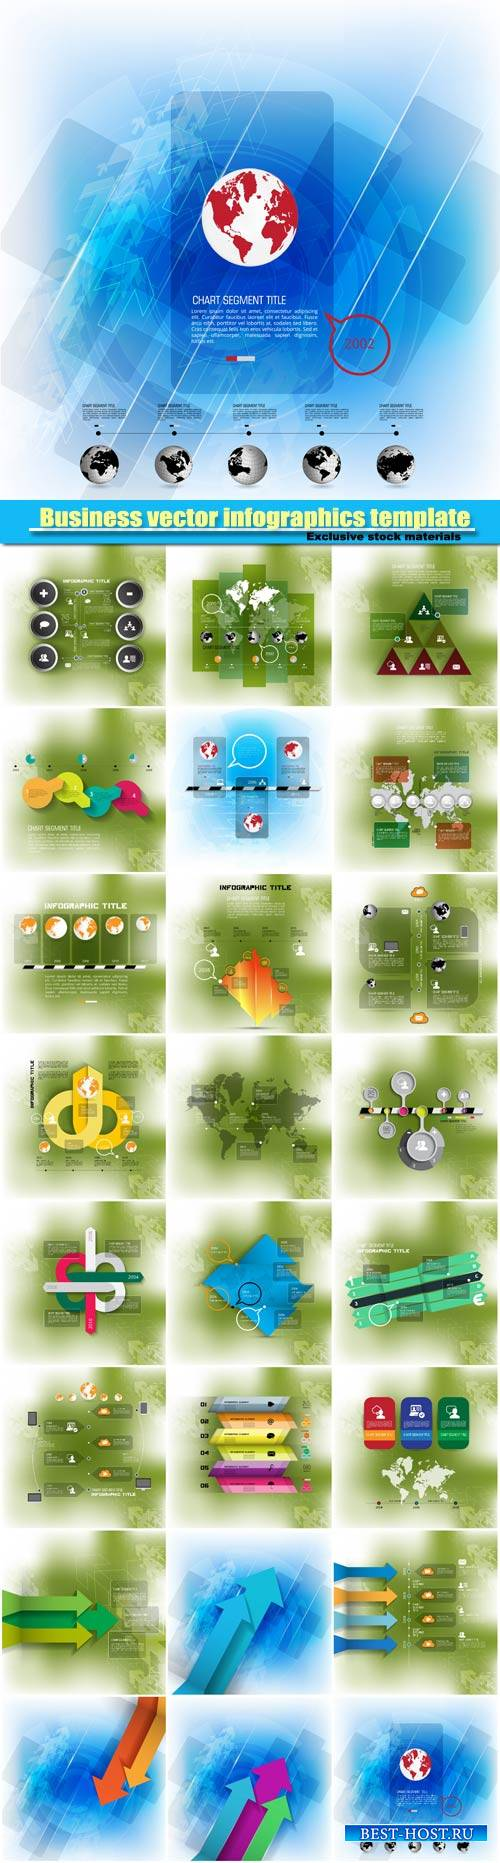 Business vector infographics template